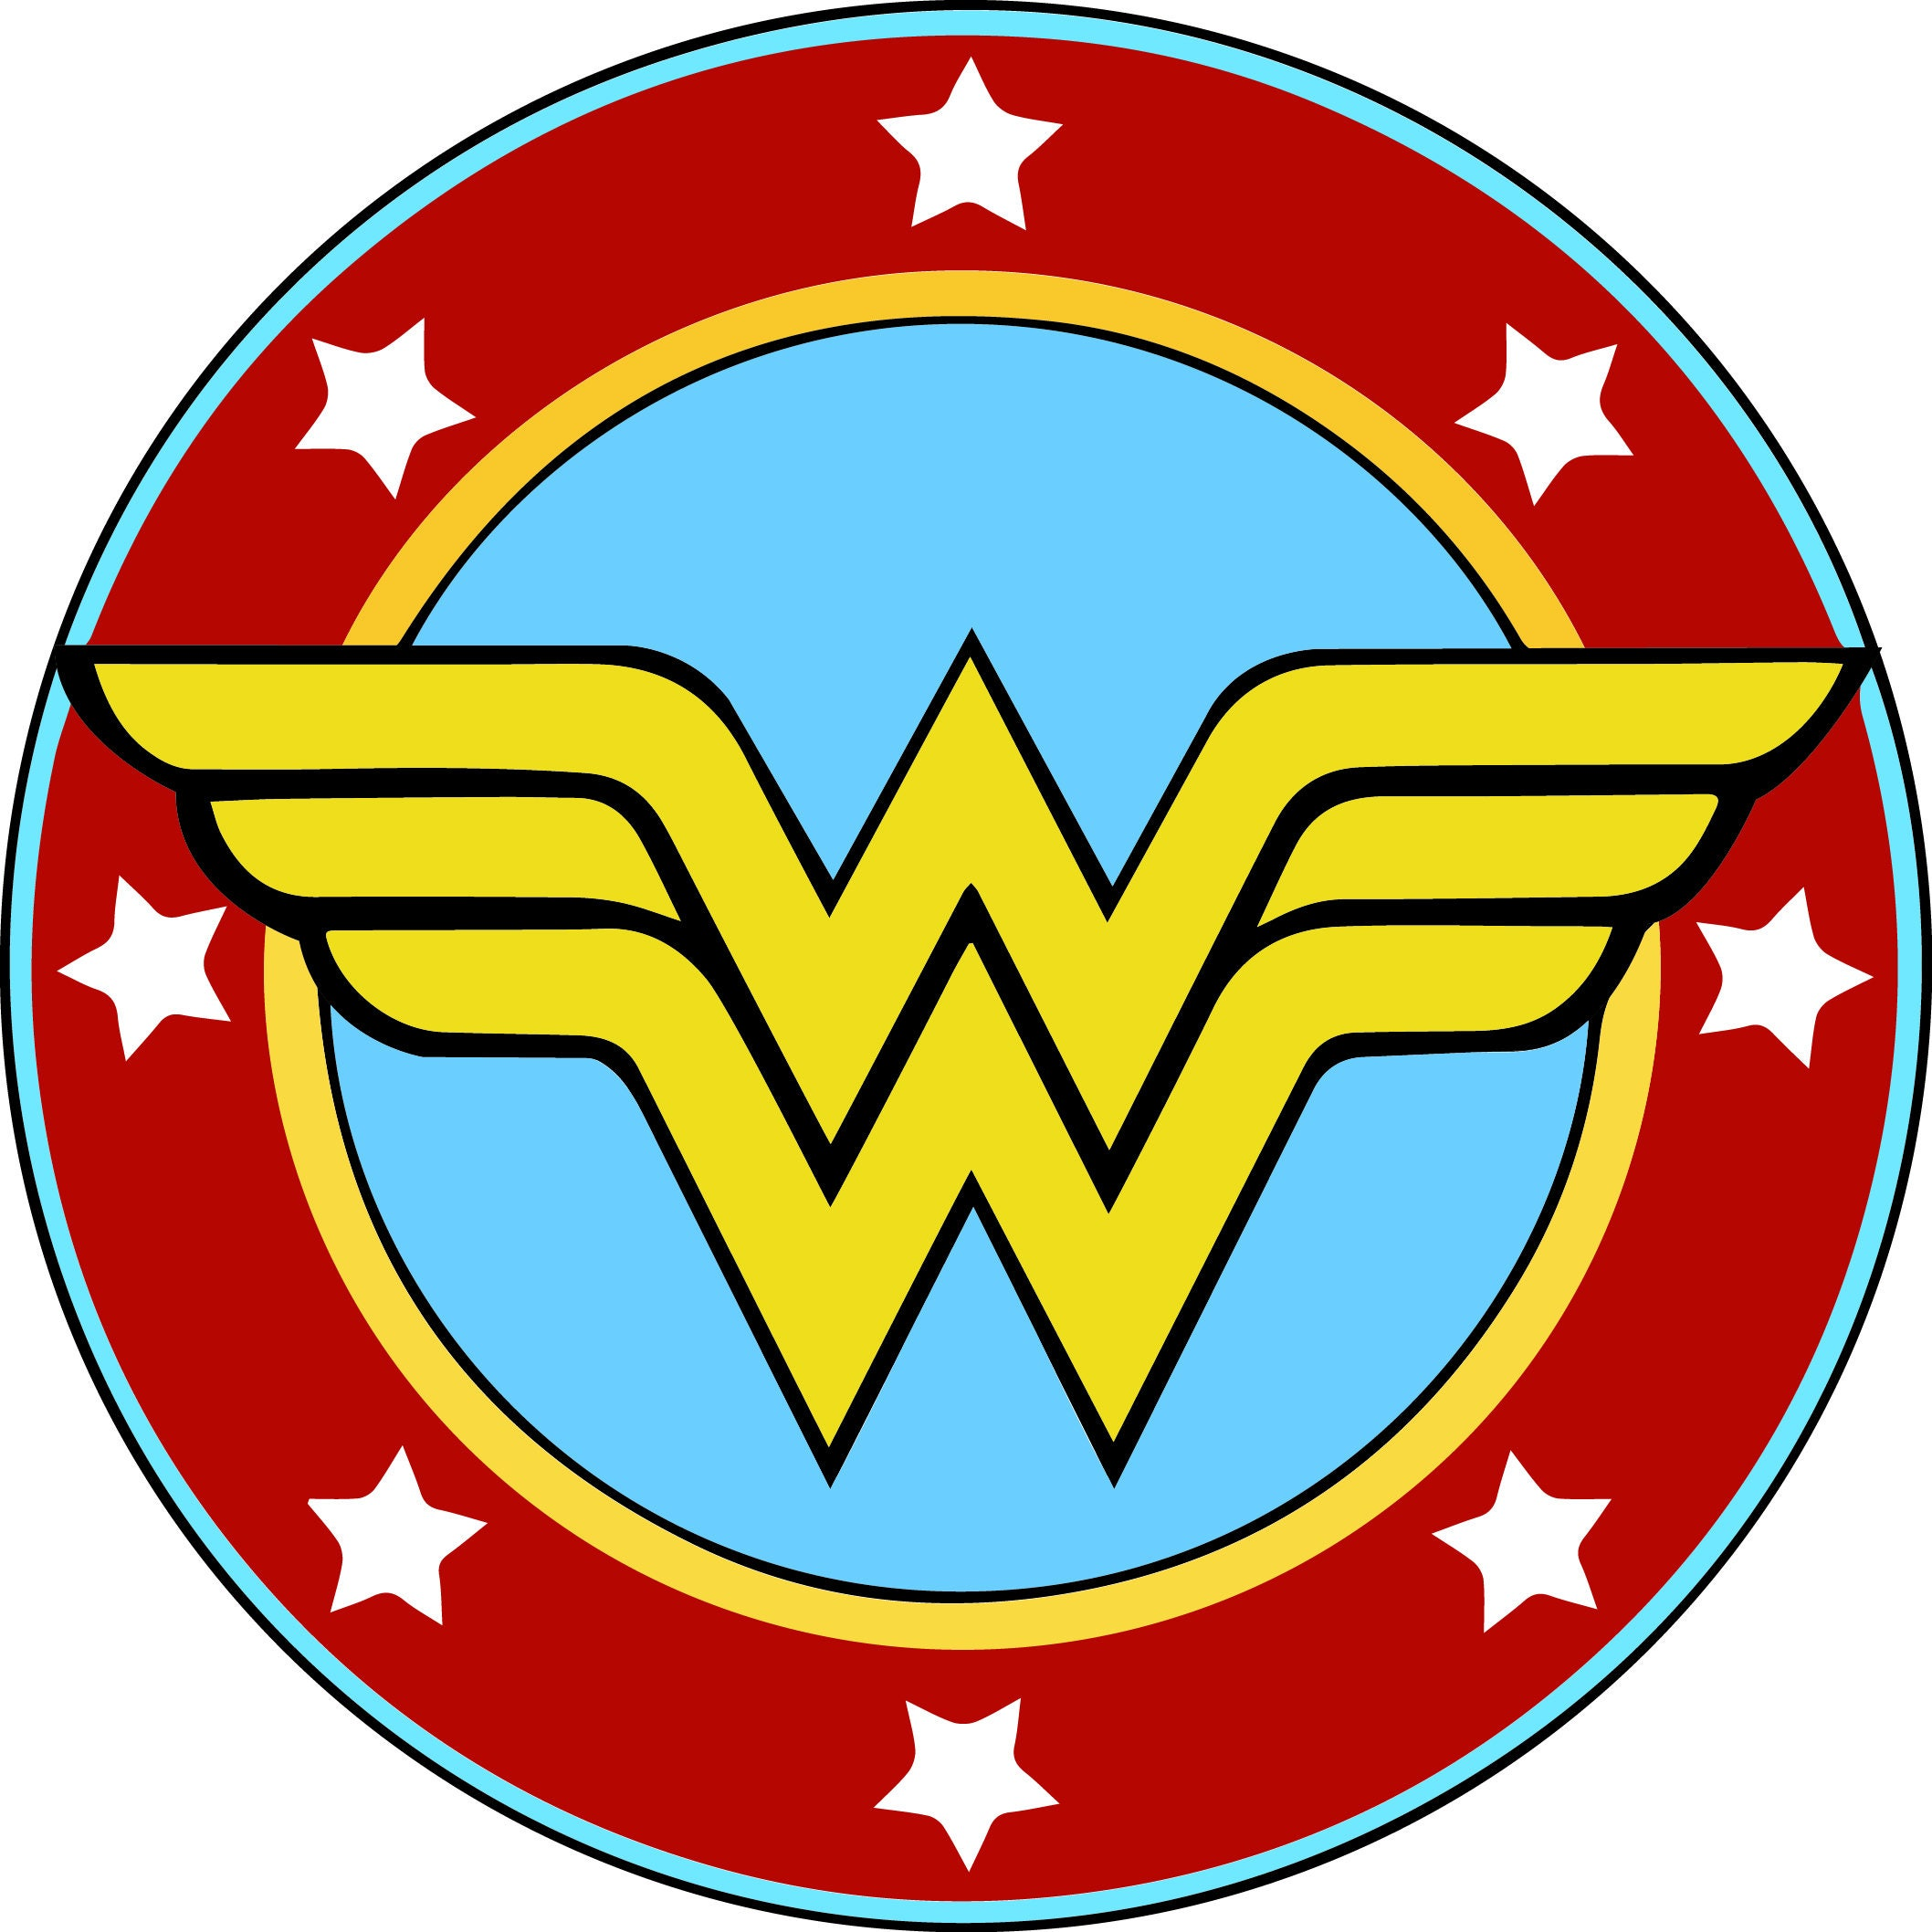 wonder woman svg wonder woman logo svg wonder woman clipart rh etsystudio com wonder woman clip art in black and white wonder woman clip art pictures